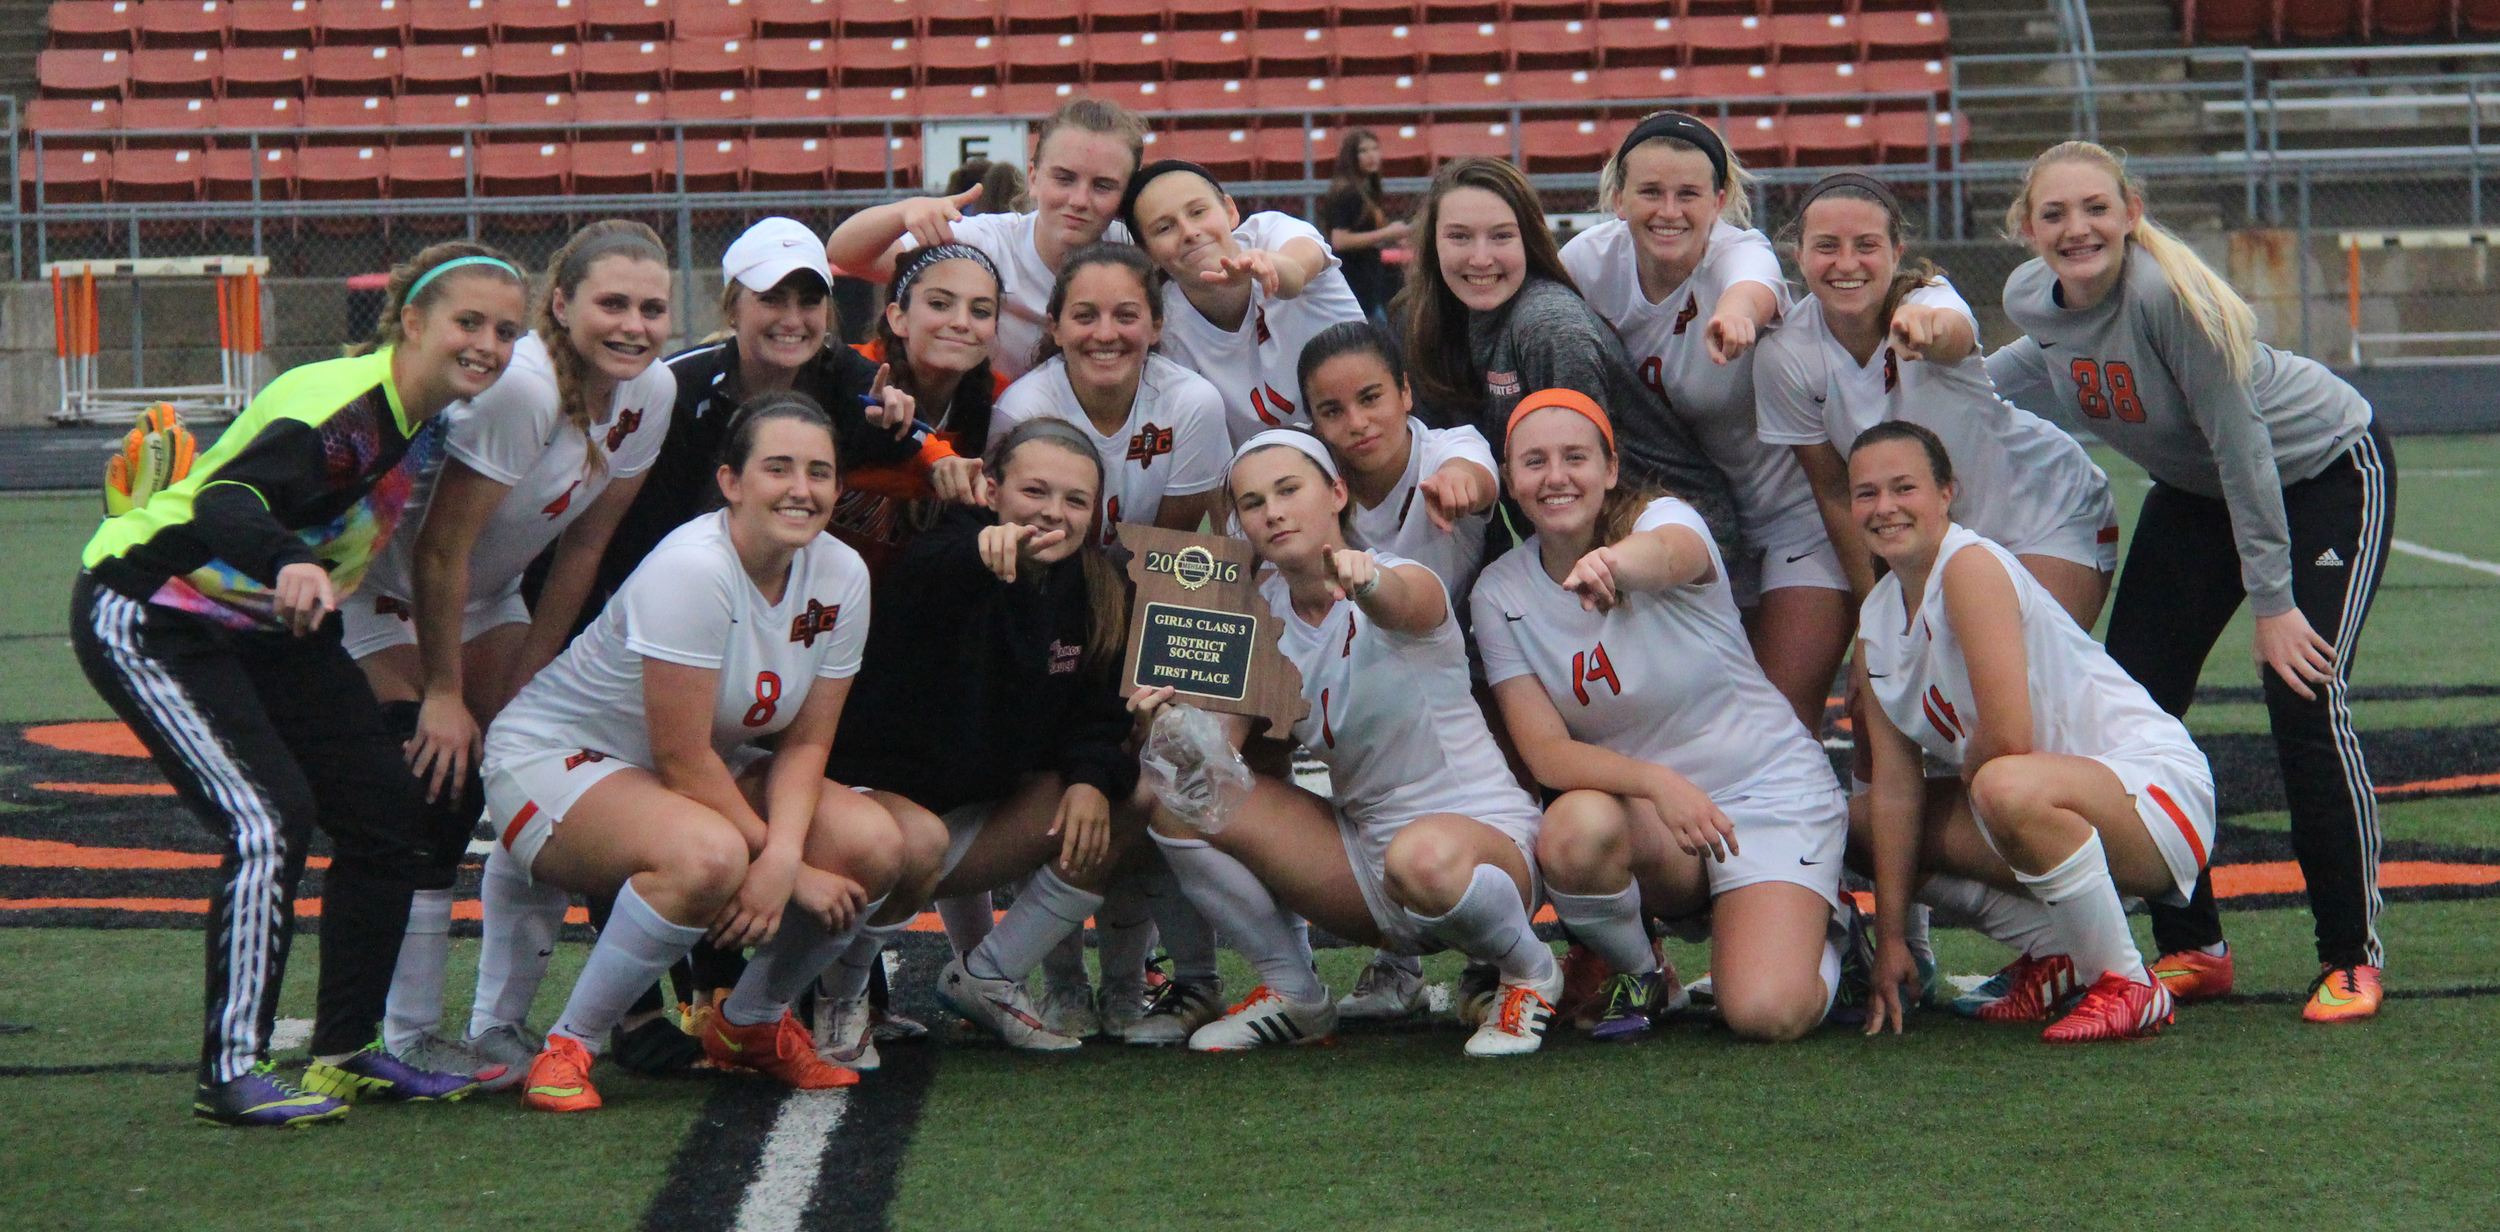 ROSS MARTIN/Citizen photo Platte County players celebrate with the Class 3 District 16 championship plaque following a 2-1 overtime win against Smithville on Thursday, May 19 at Pirate Stadium.